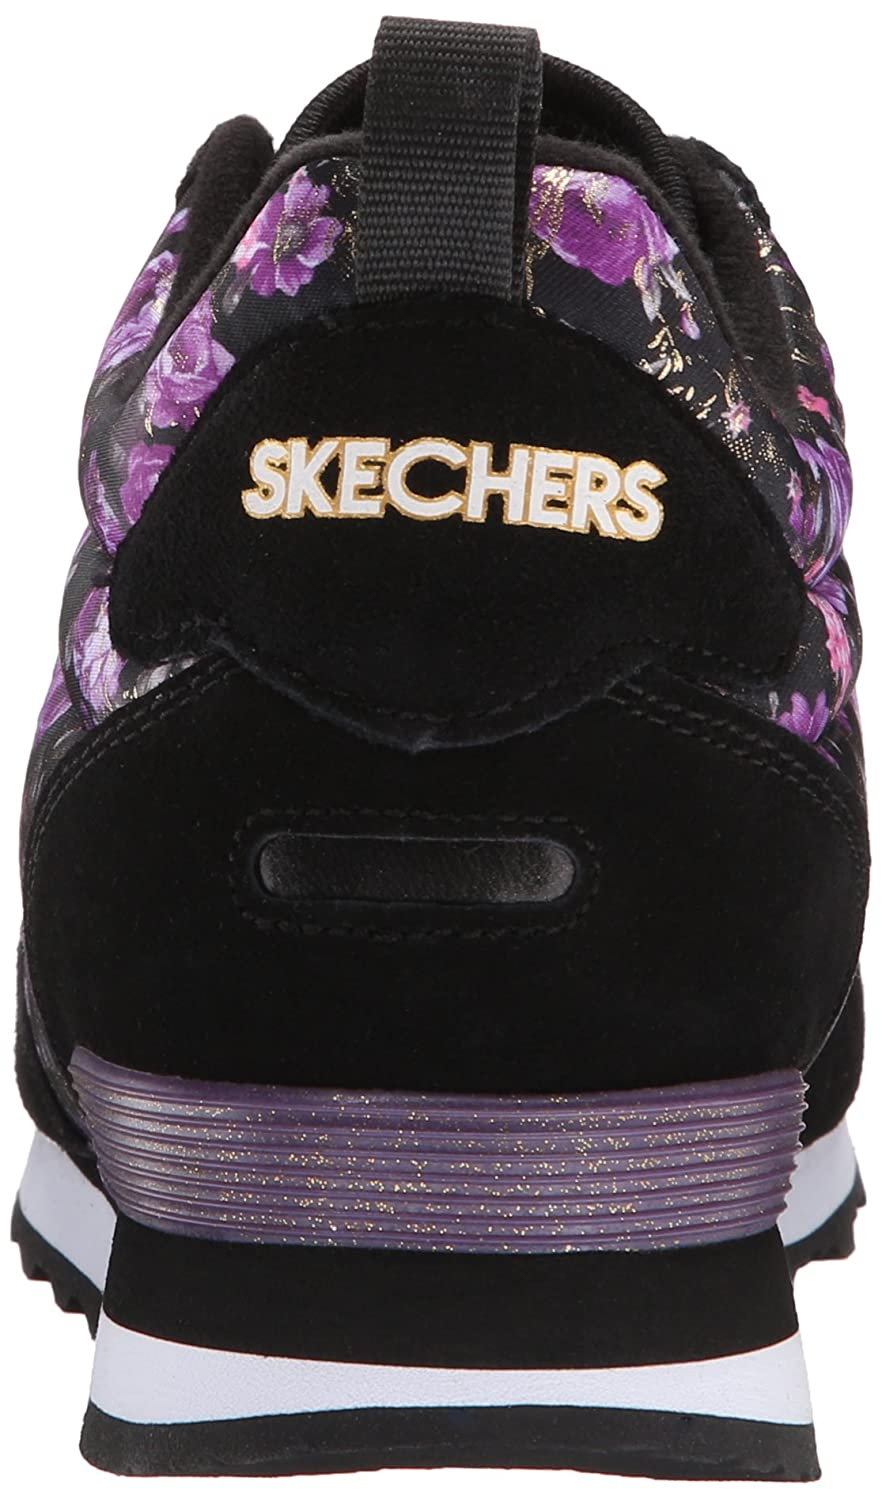 uk availability 93601 aed02 Skechers Women s OG 85 - Hollywood Rose Sneakers  Skechers  Amazon.ca   Shoes   Handbags